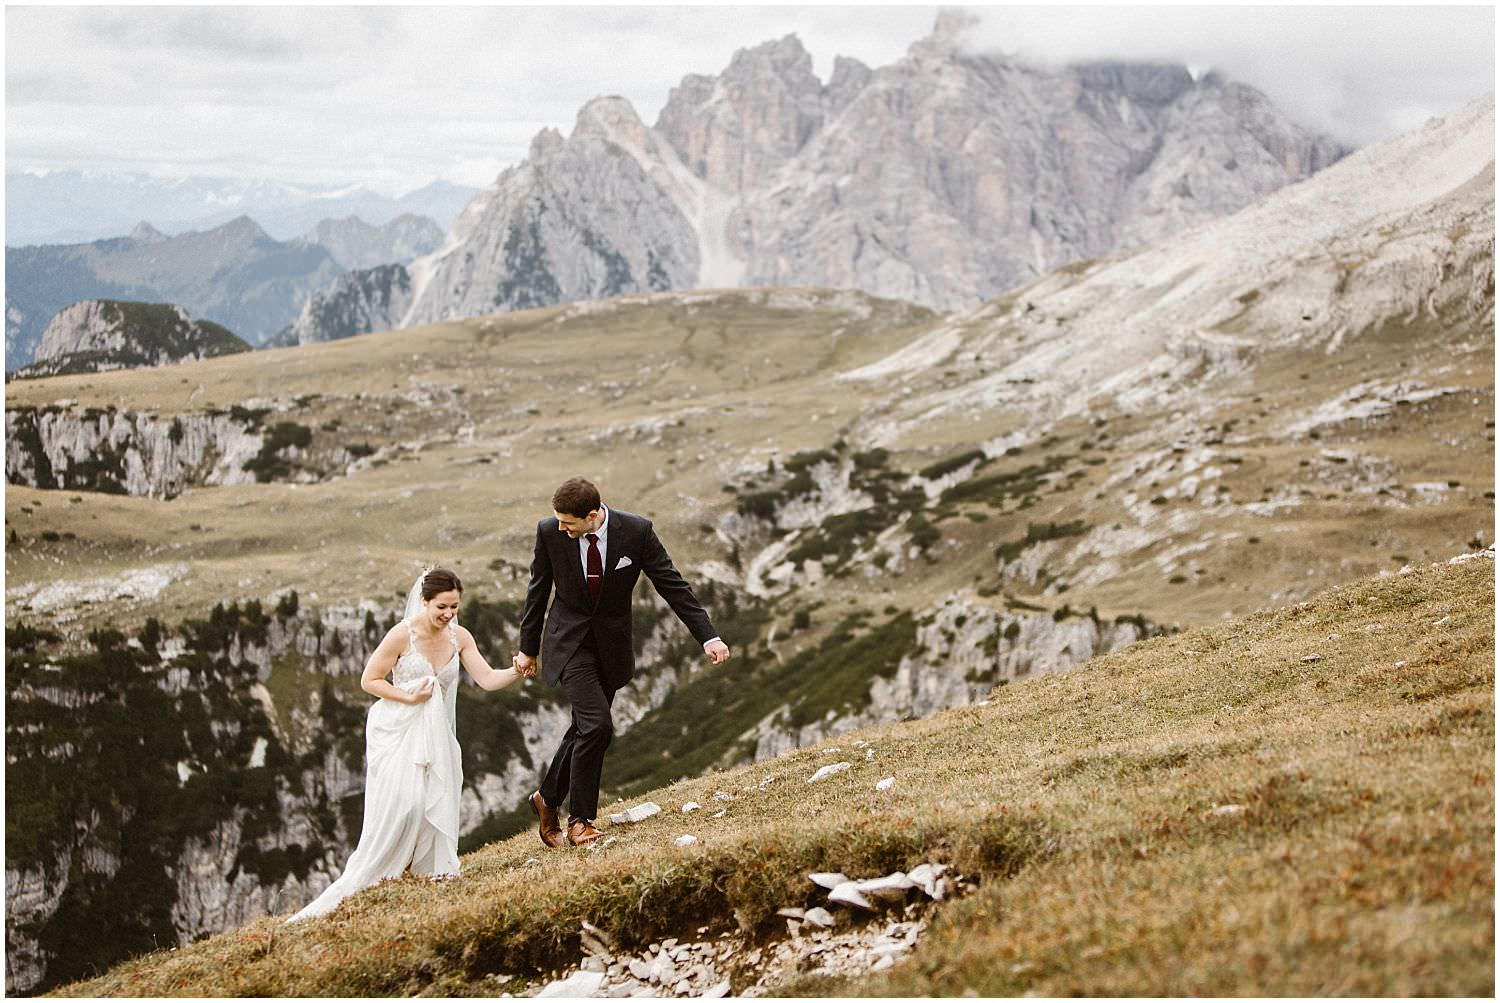 Wedding photos in the Dolomites